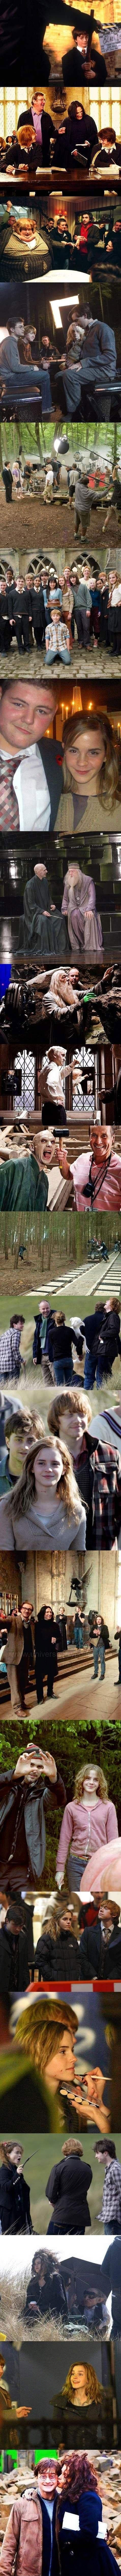 Behind the scenes of Harry Potter. I love to see actors actually be themselves on set and joke around these are the pictures that make me smile. :)